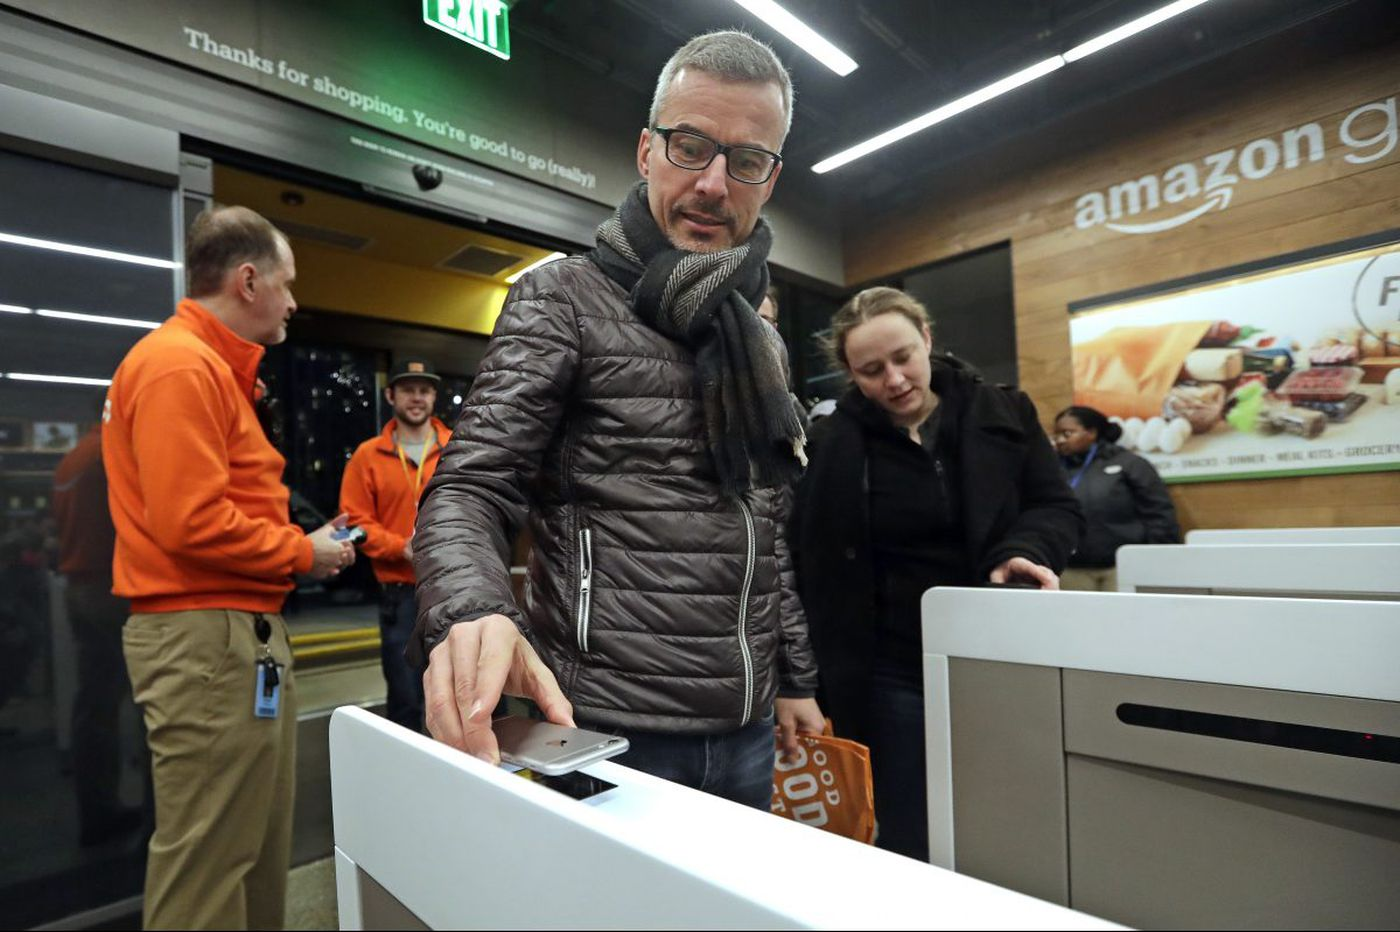 Amazon Go pushes Mediterranean lamb, skips the chili cheese dogs